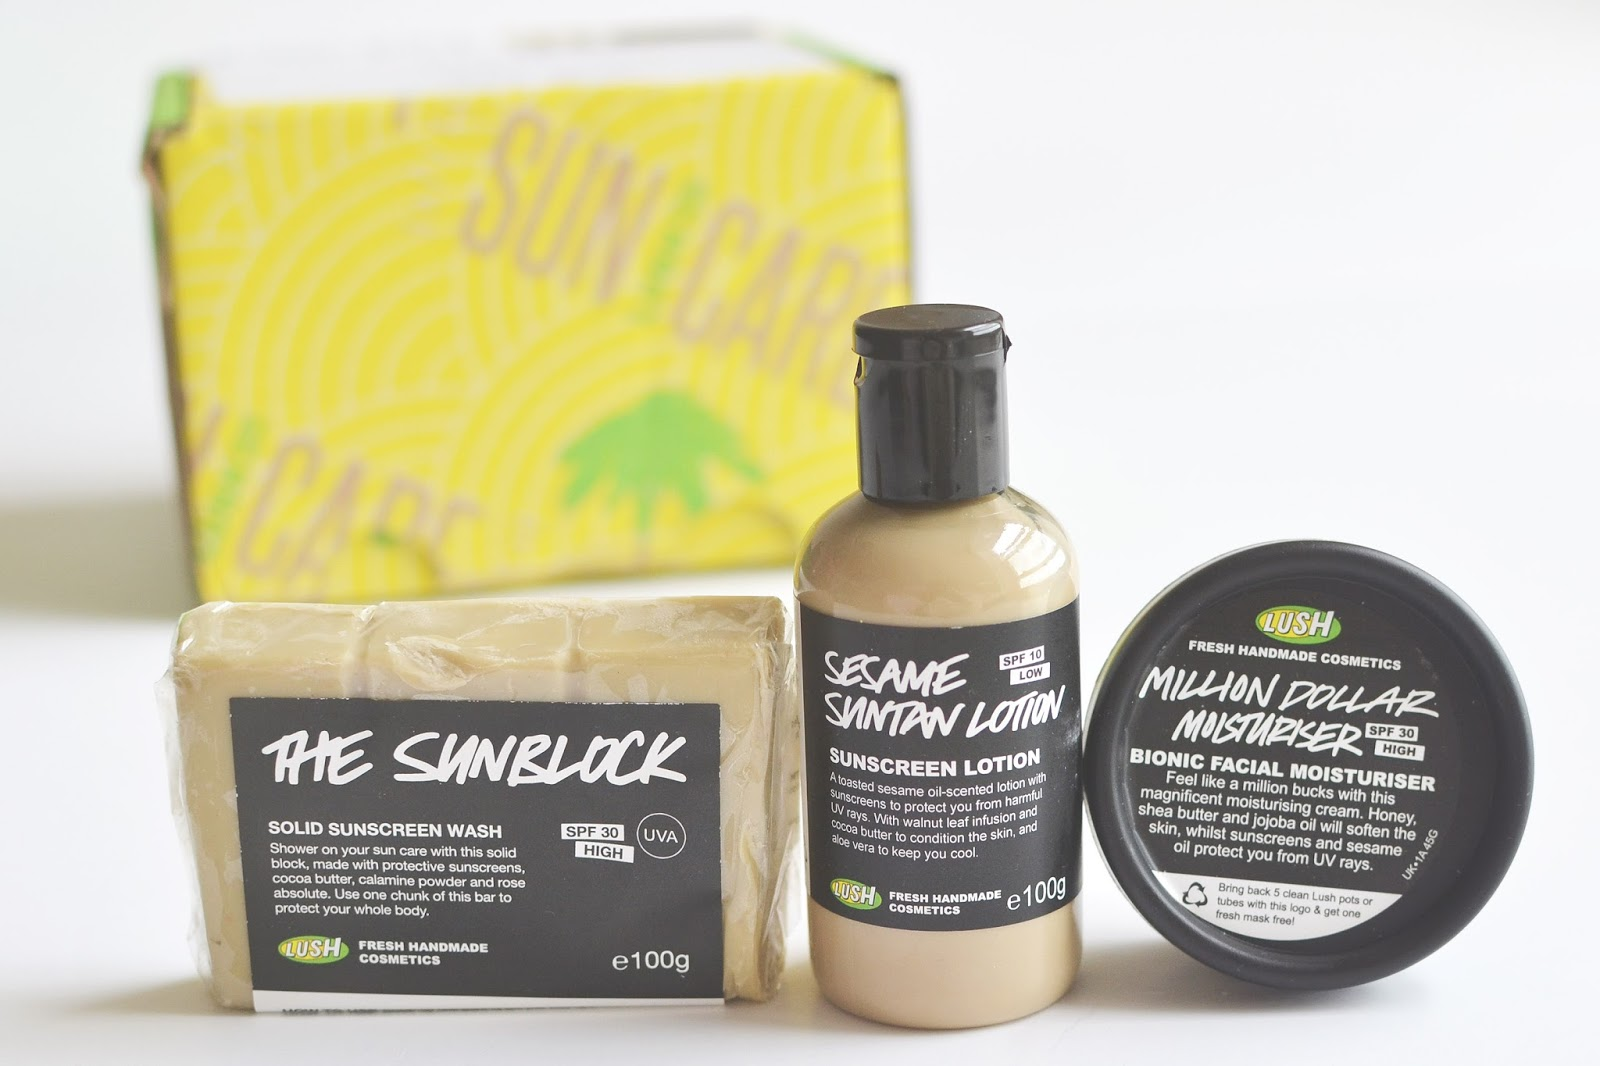 lush cosmetics sun care product, lush sunscreen